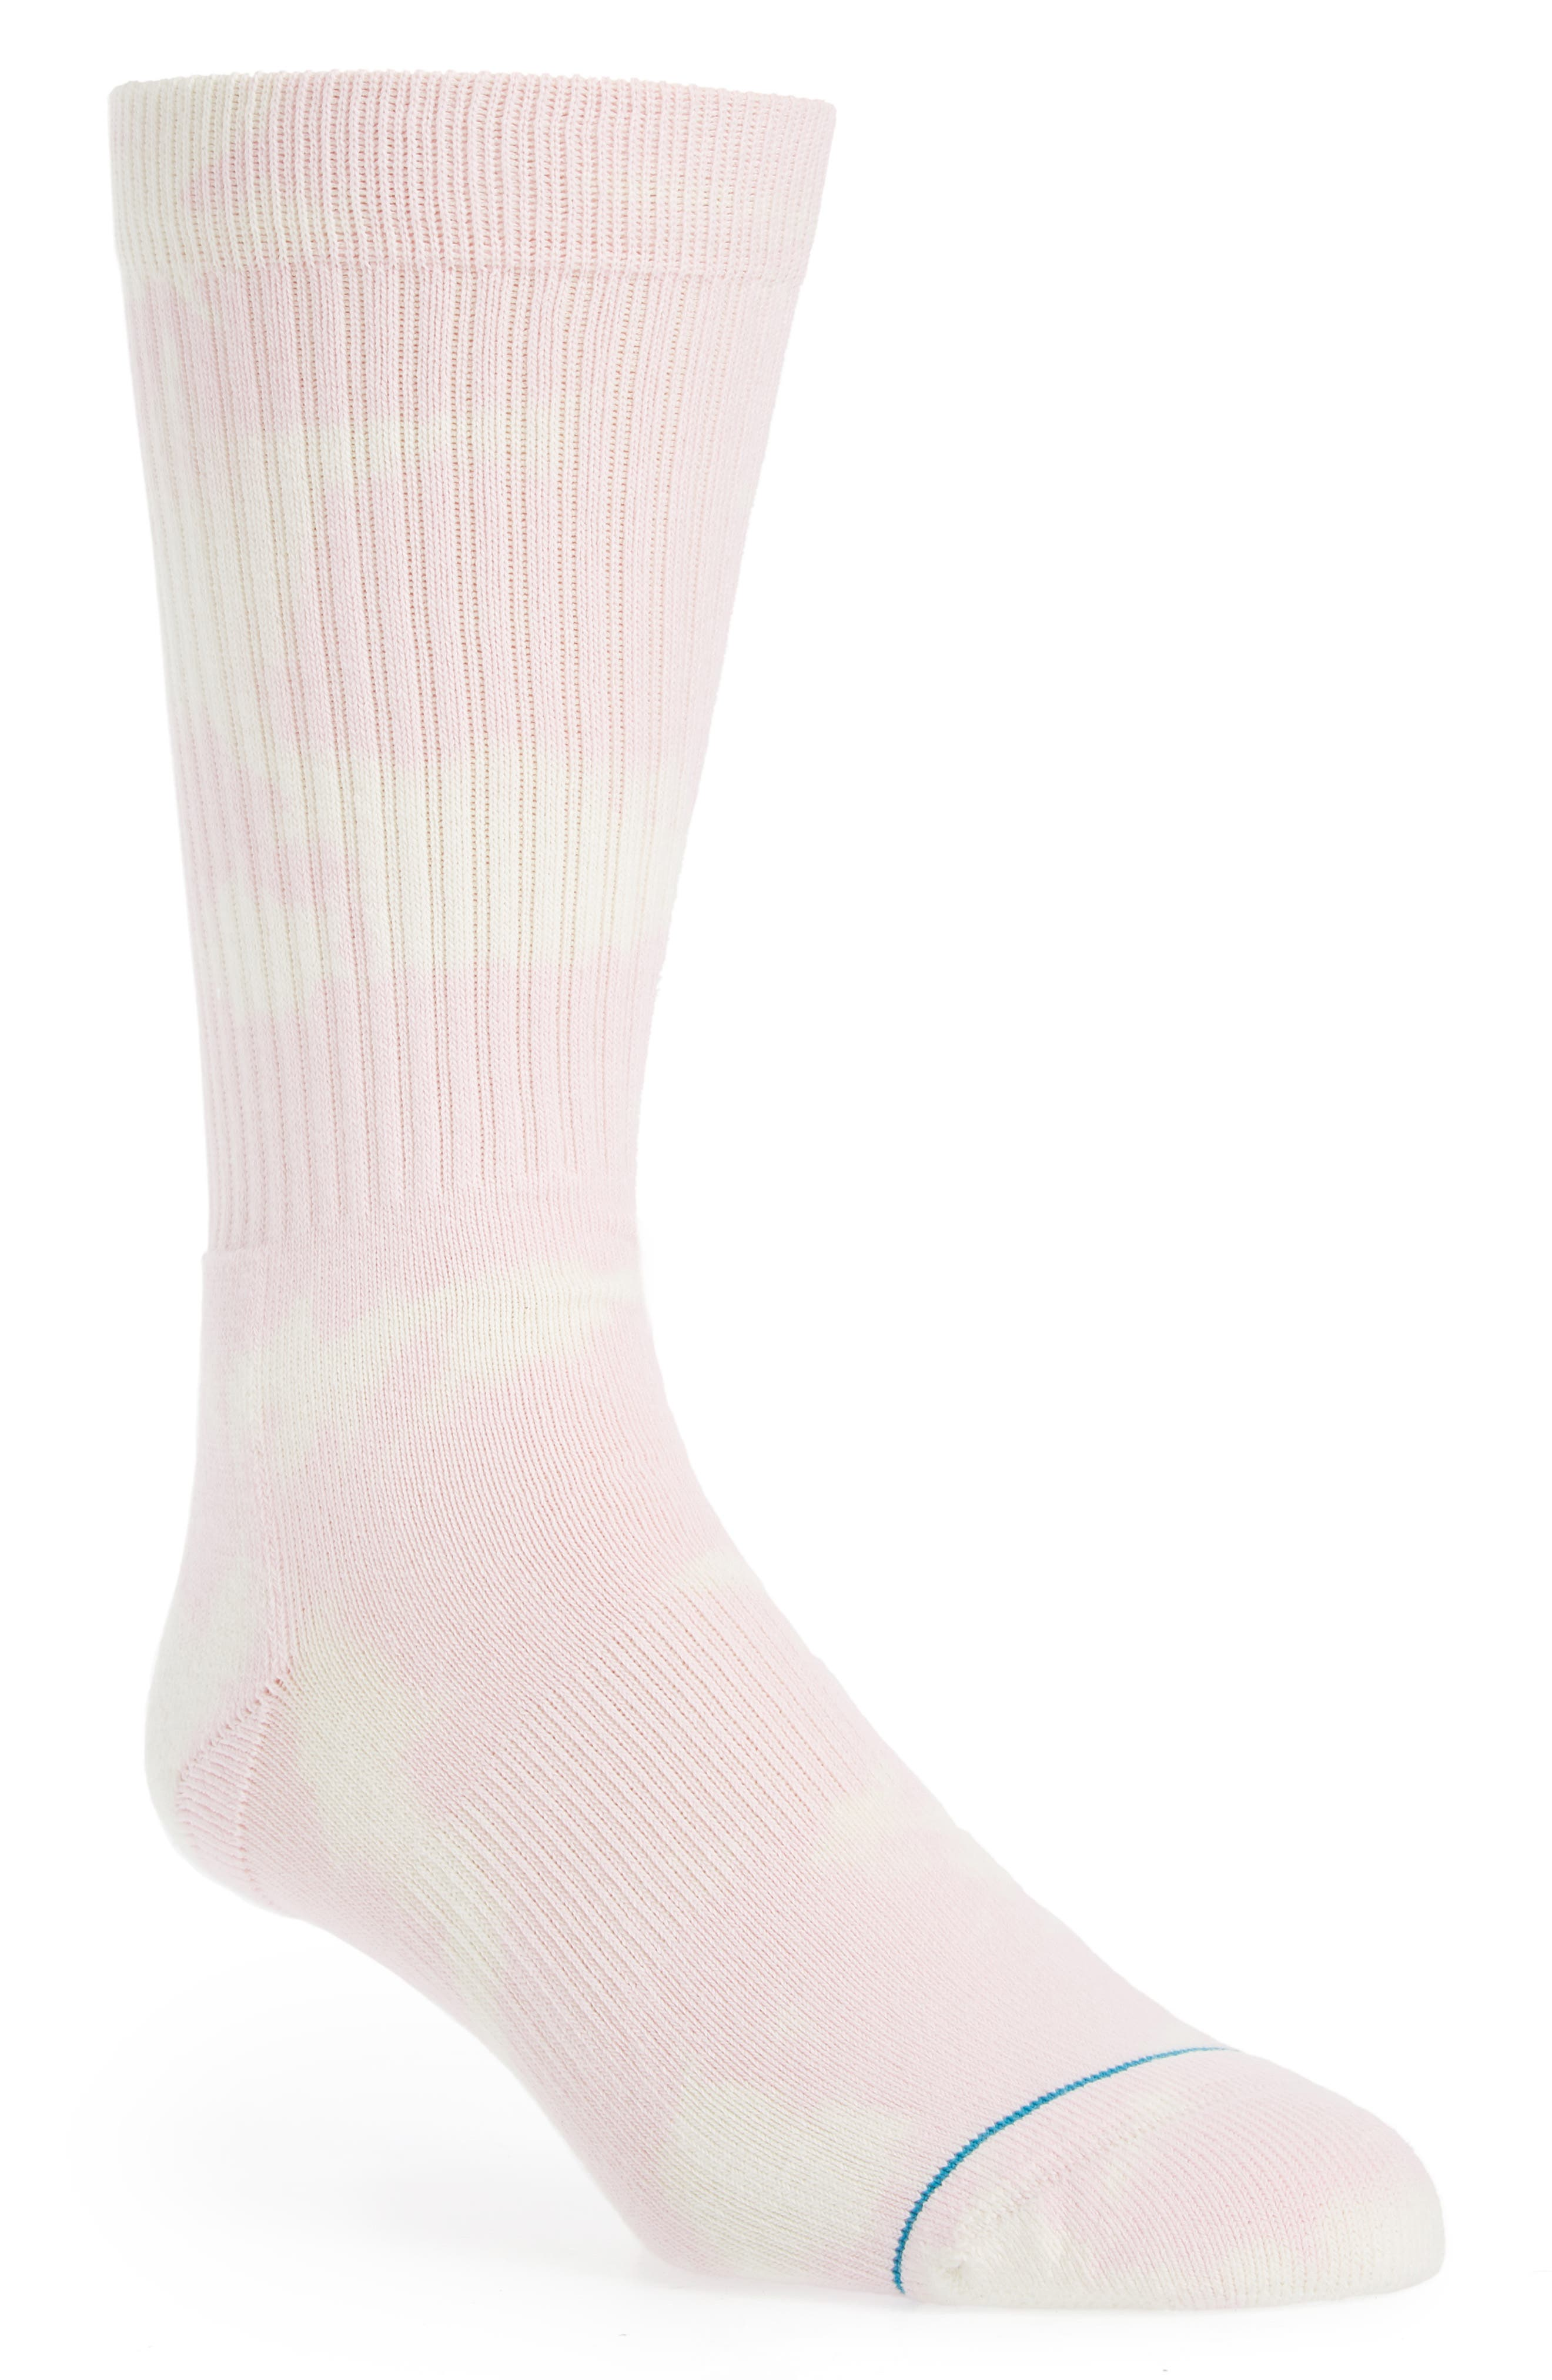 Russell Crew Socks,                             Main thumbnail 1, color,                             PINK